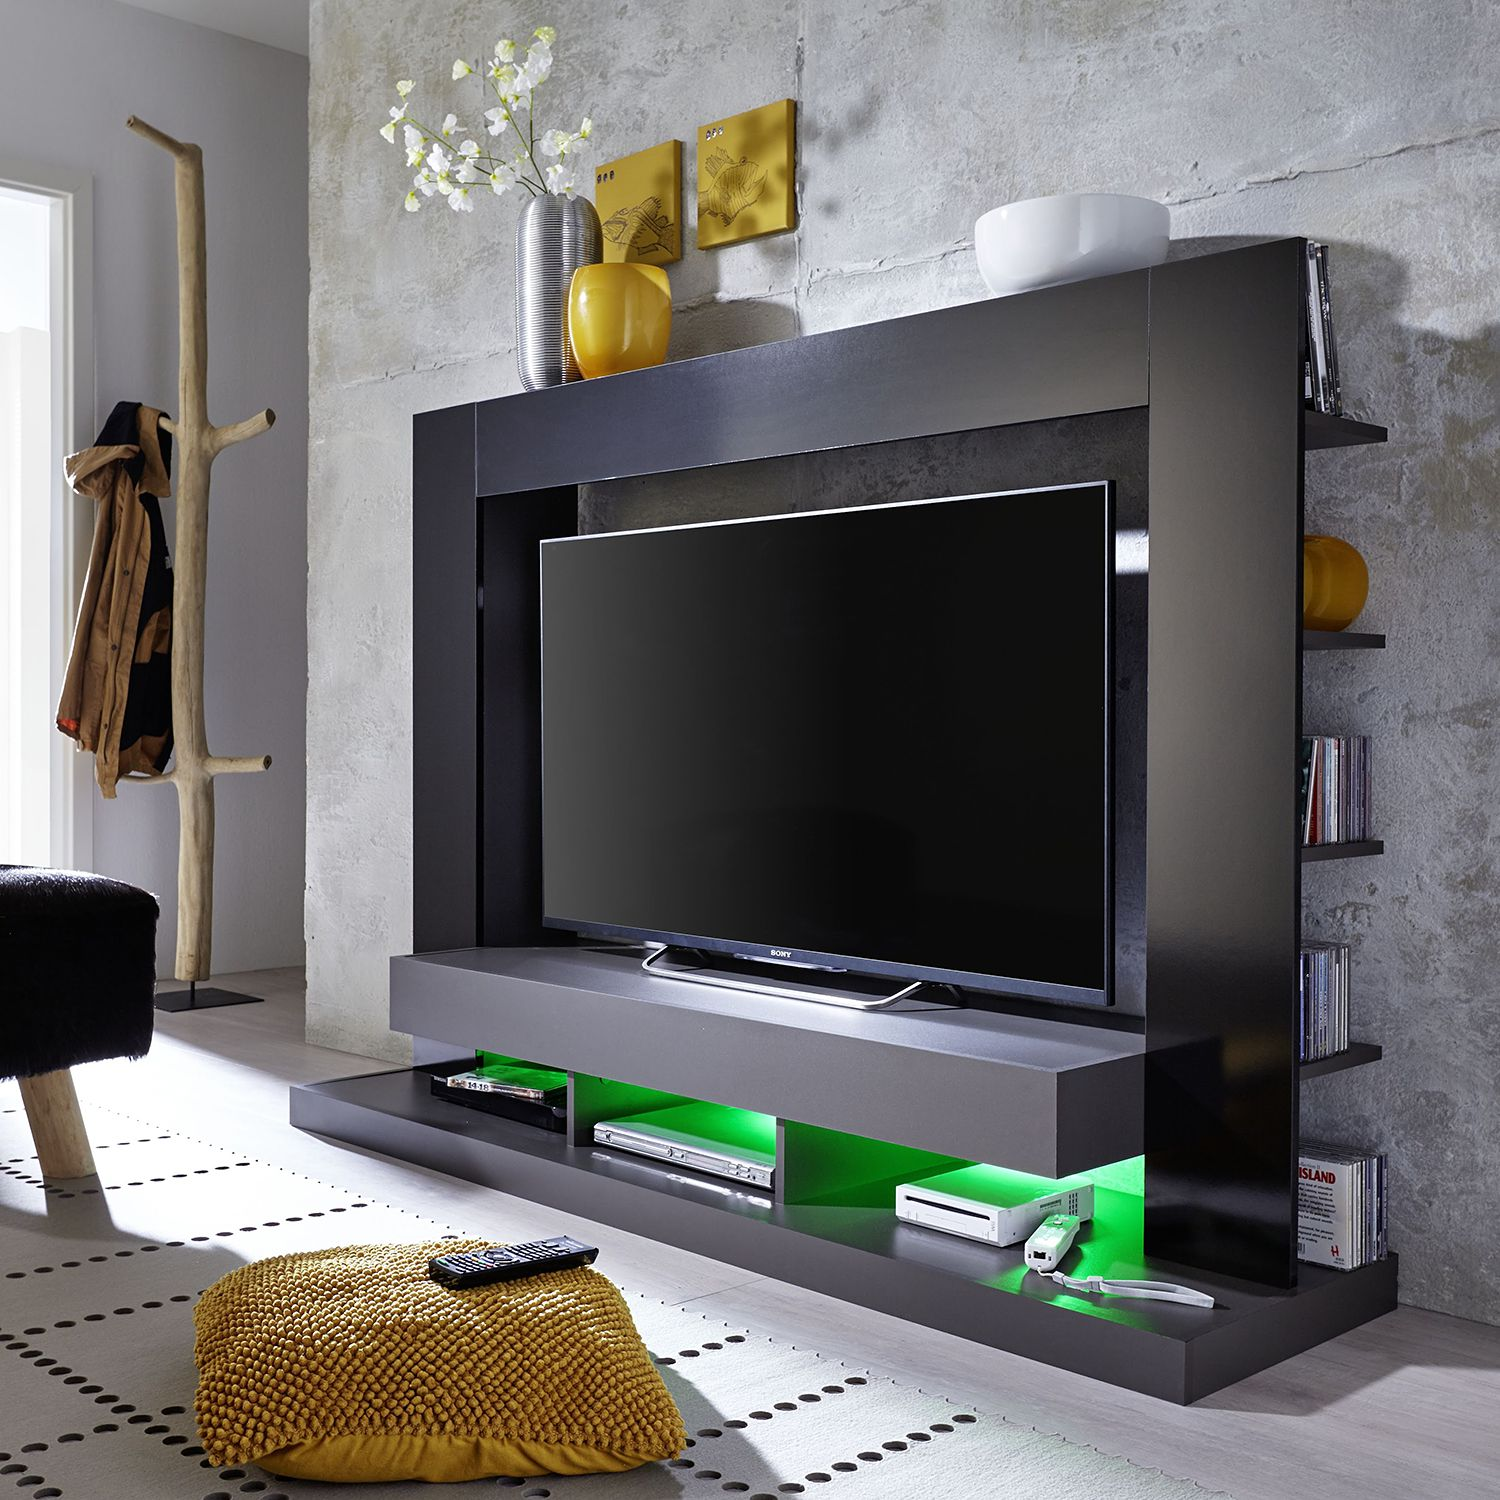 24 sparen tv wand yoder ii von trendteam 189 99 cherry m bel home24. Black Bedroom Furniture Sets. Home Design Ideas